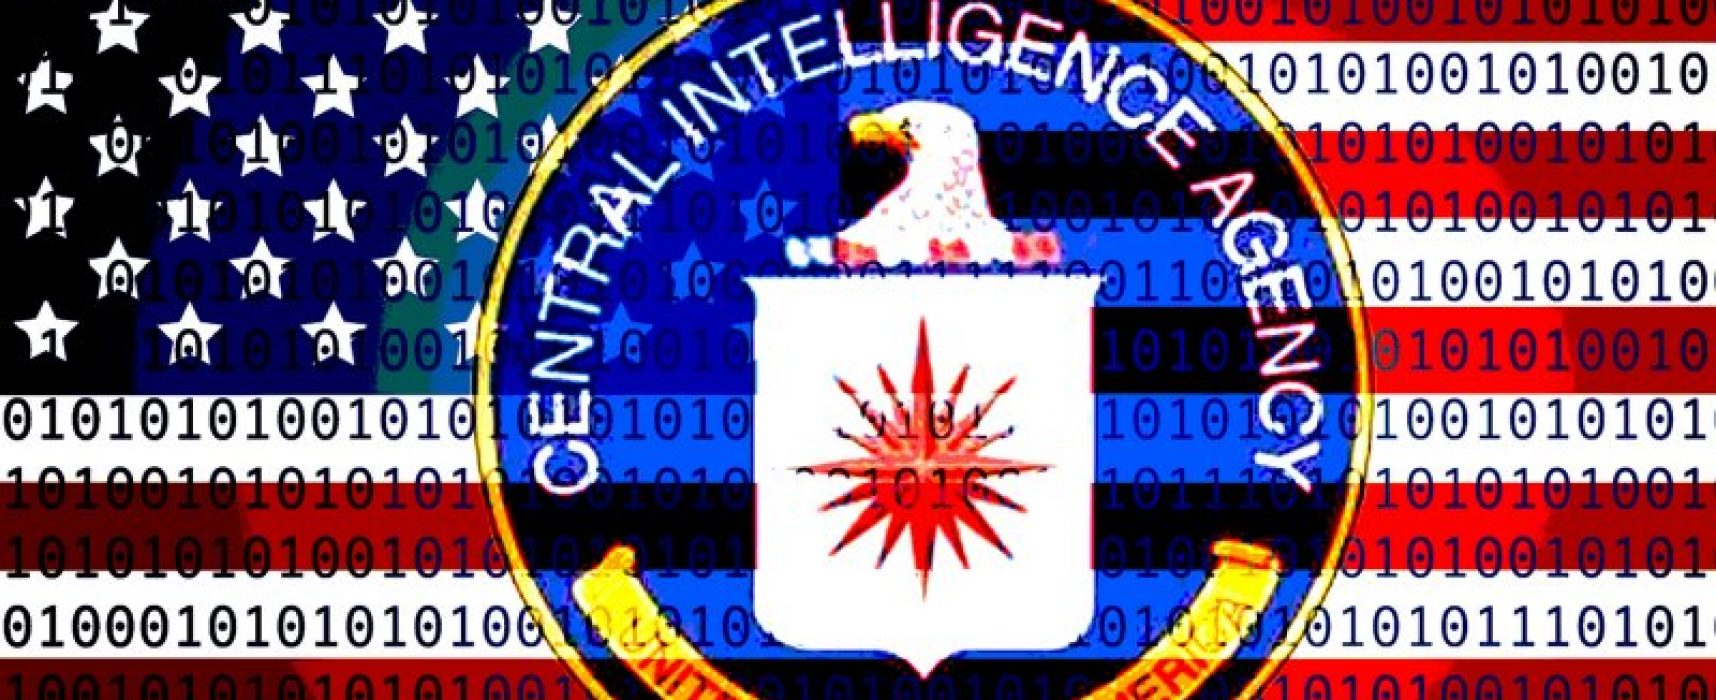 'Intelligence Collection Disaster' Russia Turns WikiLeaks CIA Dump Into Disinformation